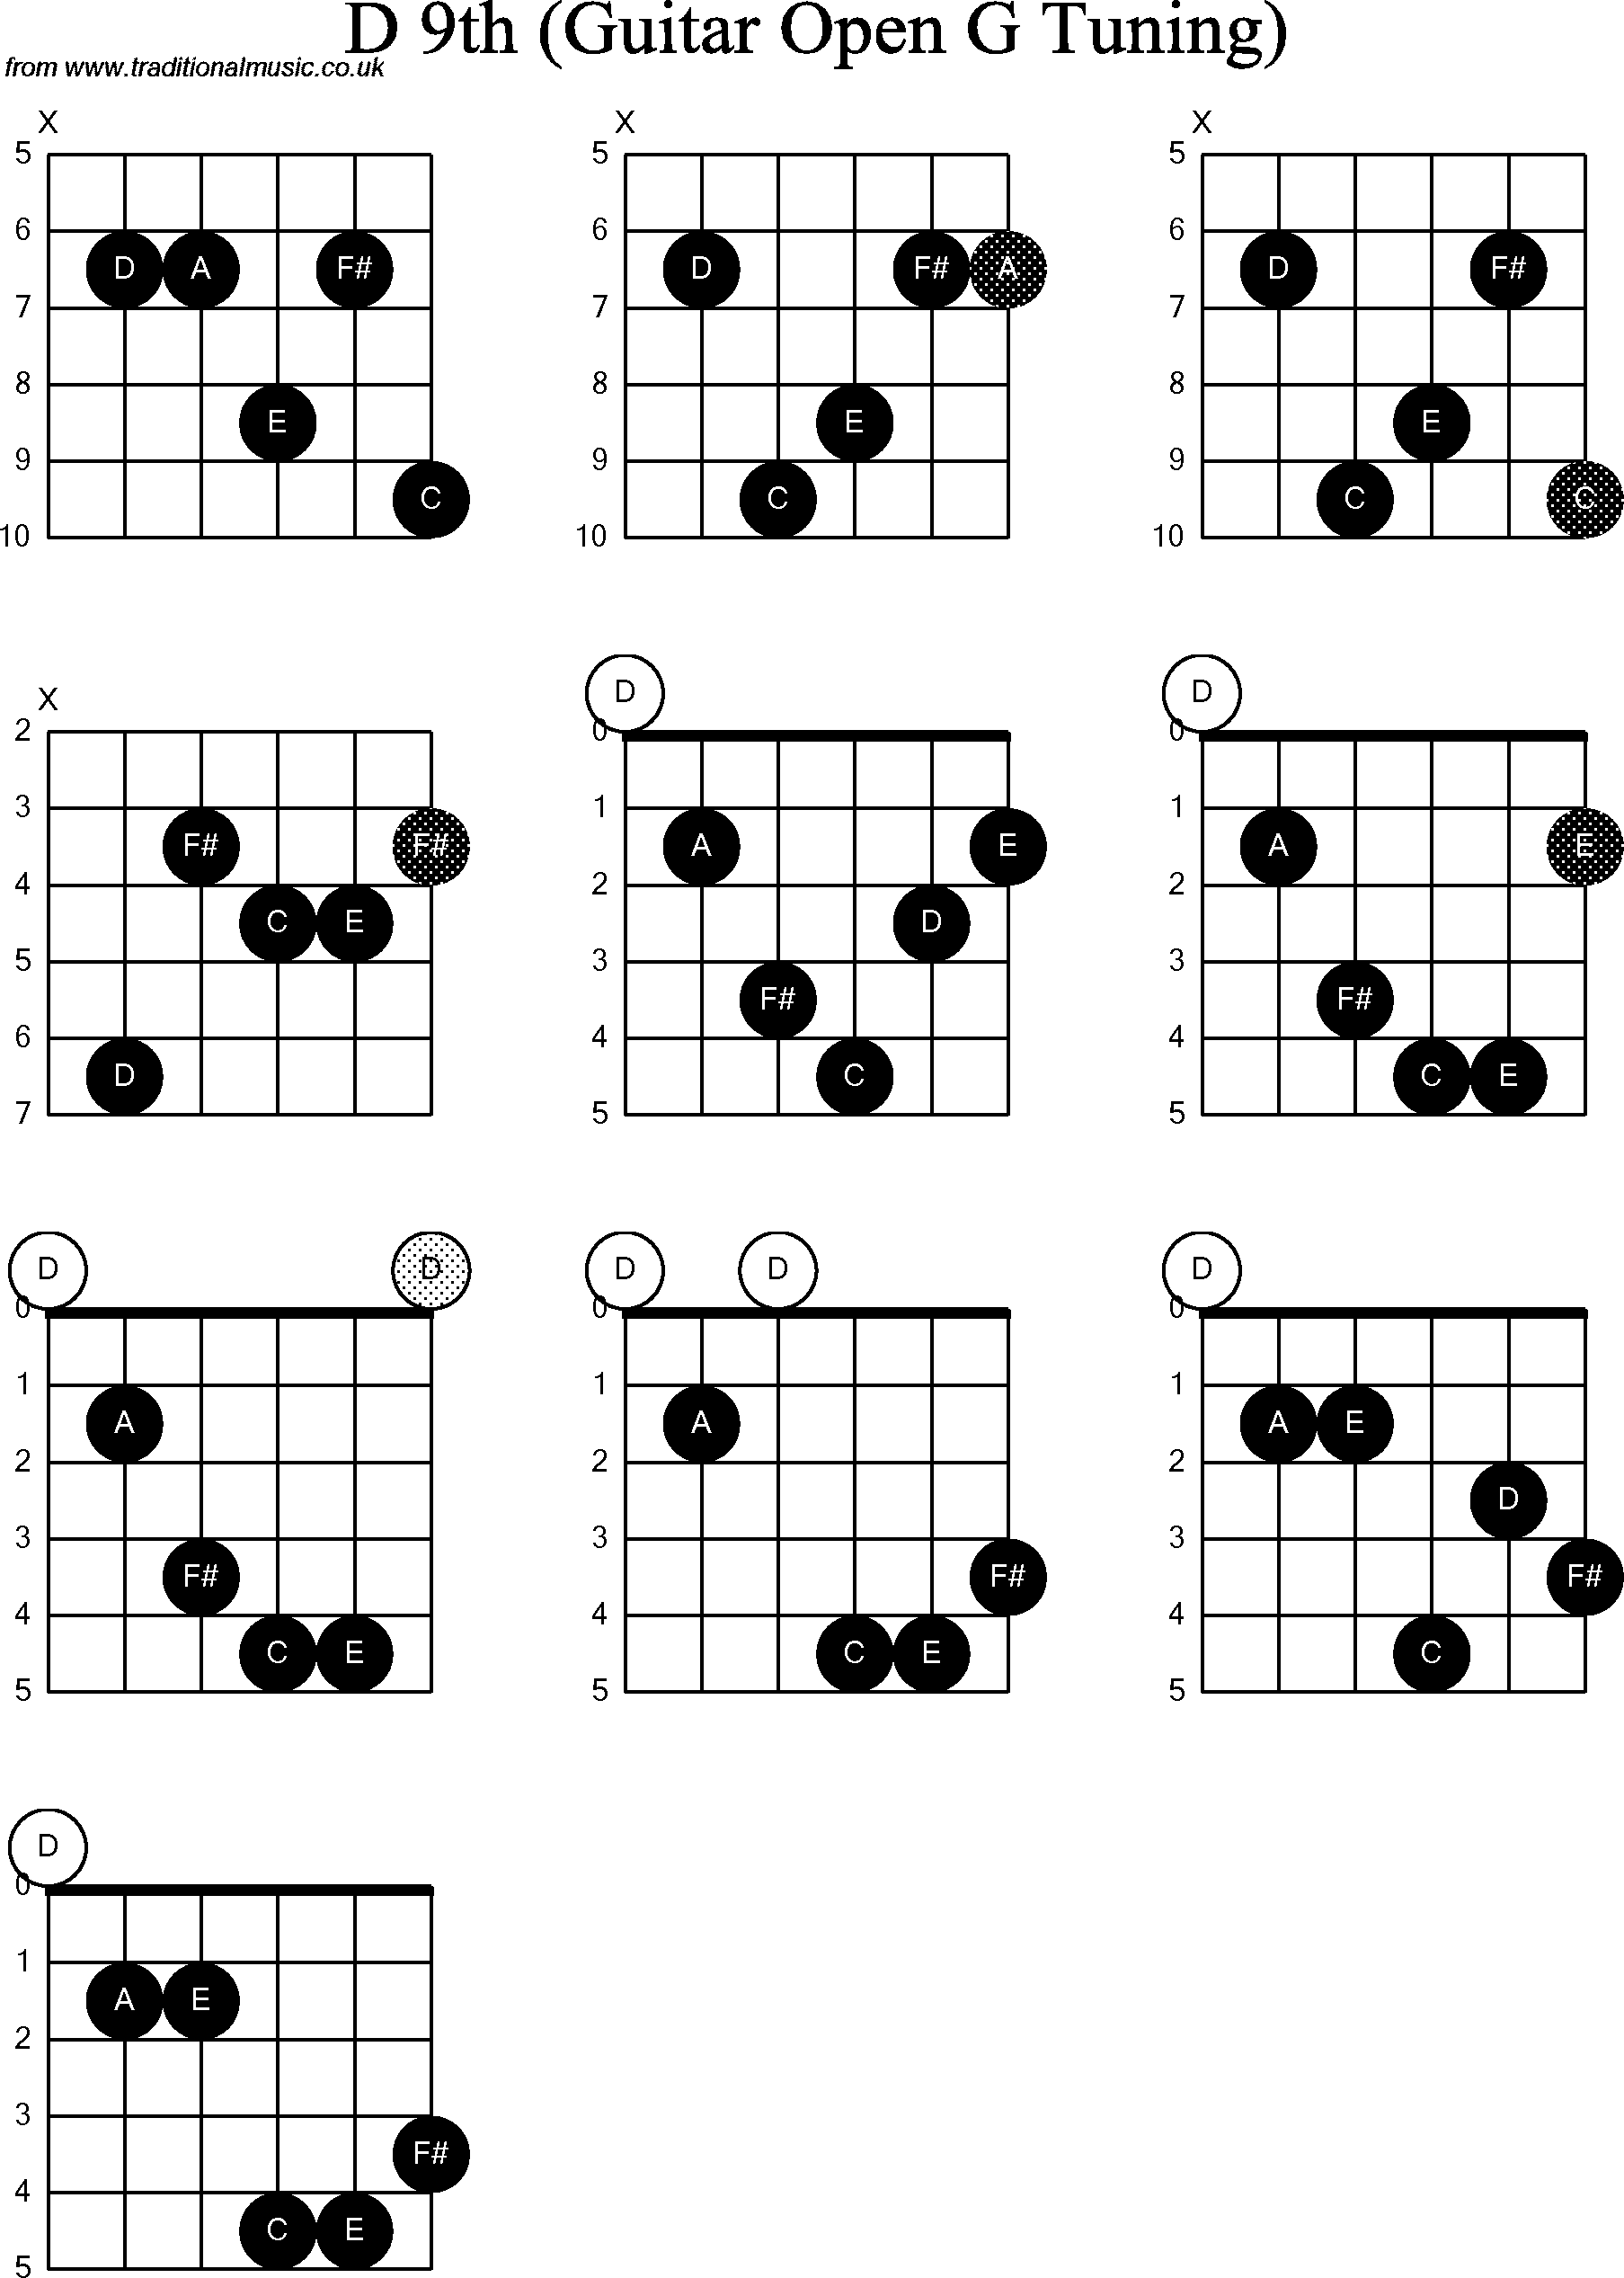 chord diagrams for  dobro d9th